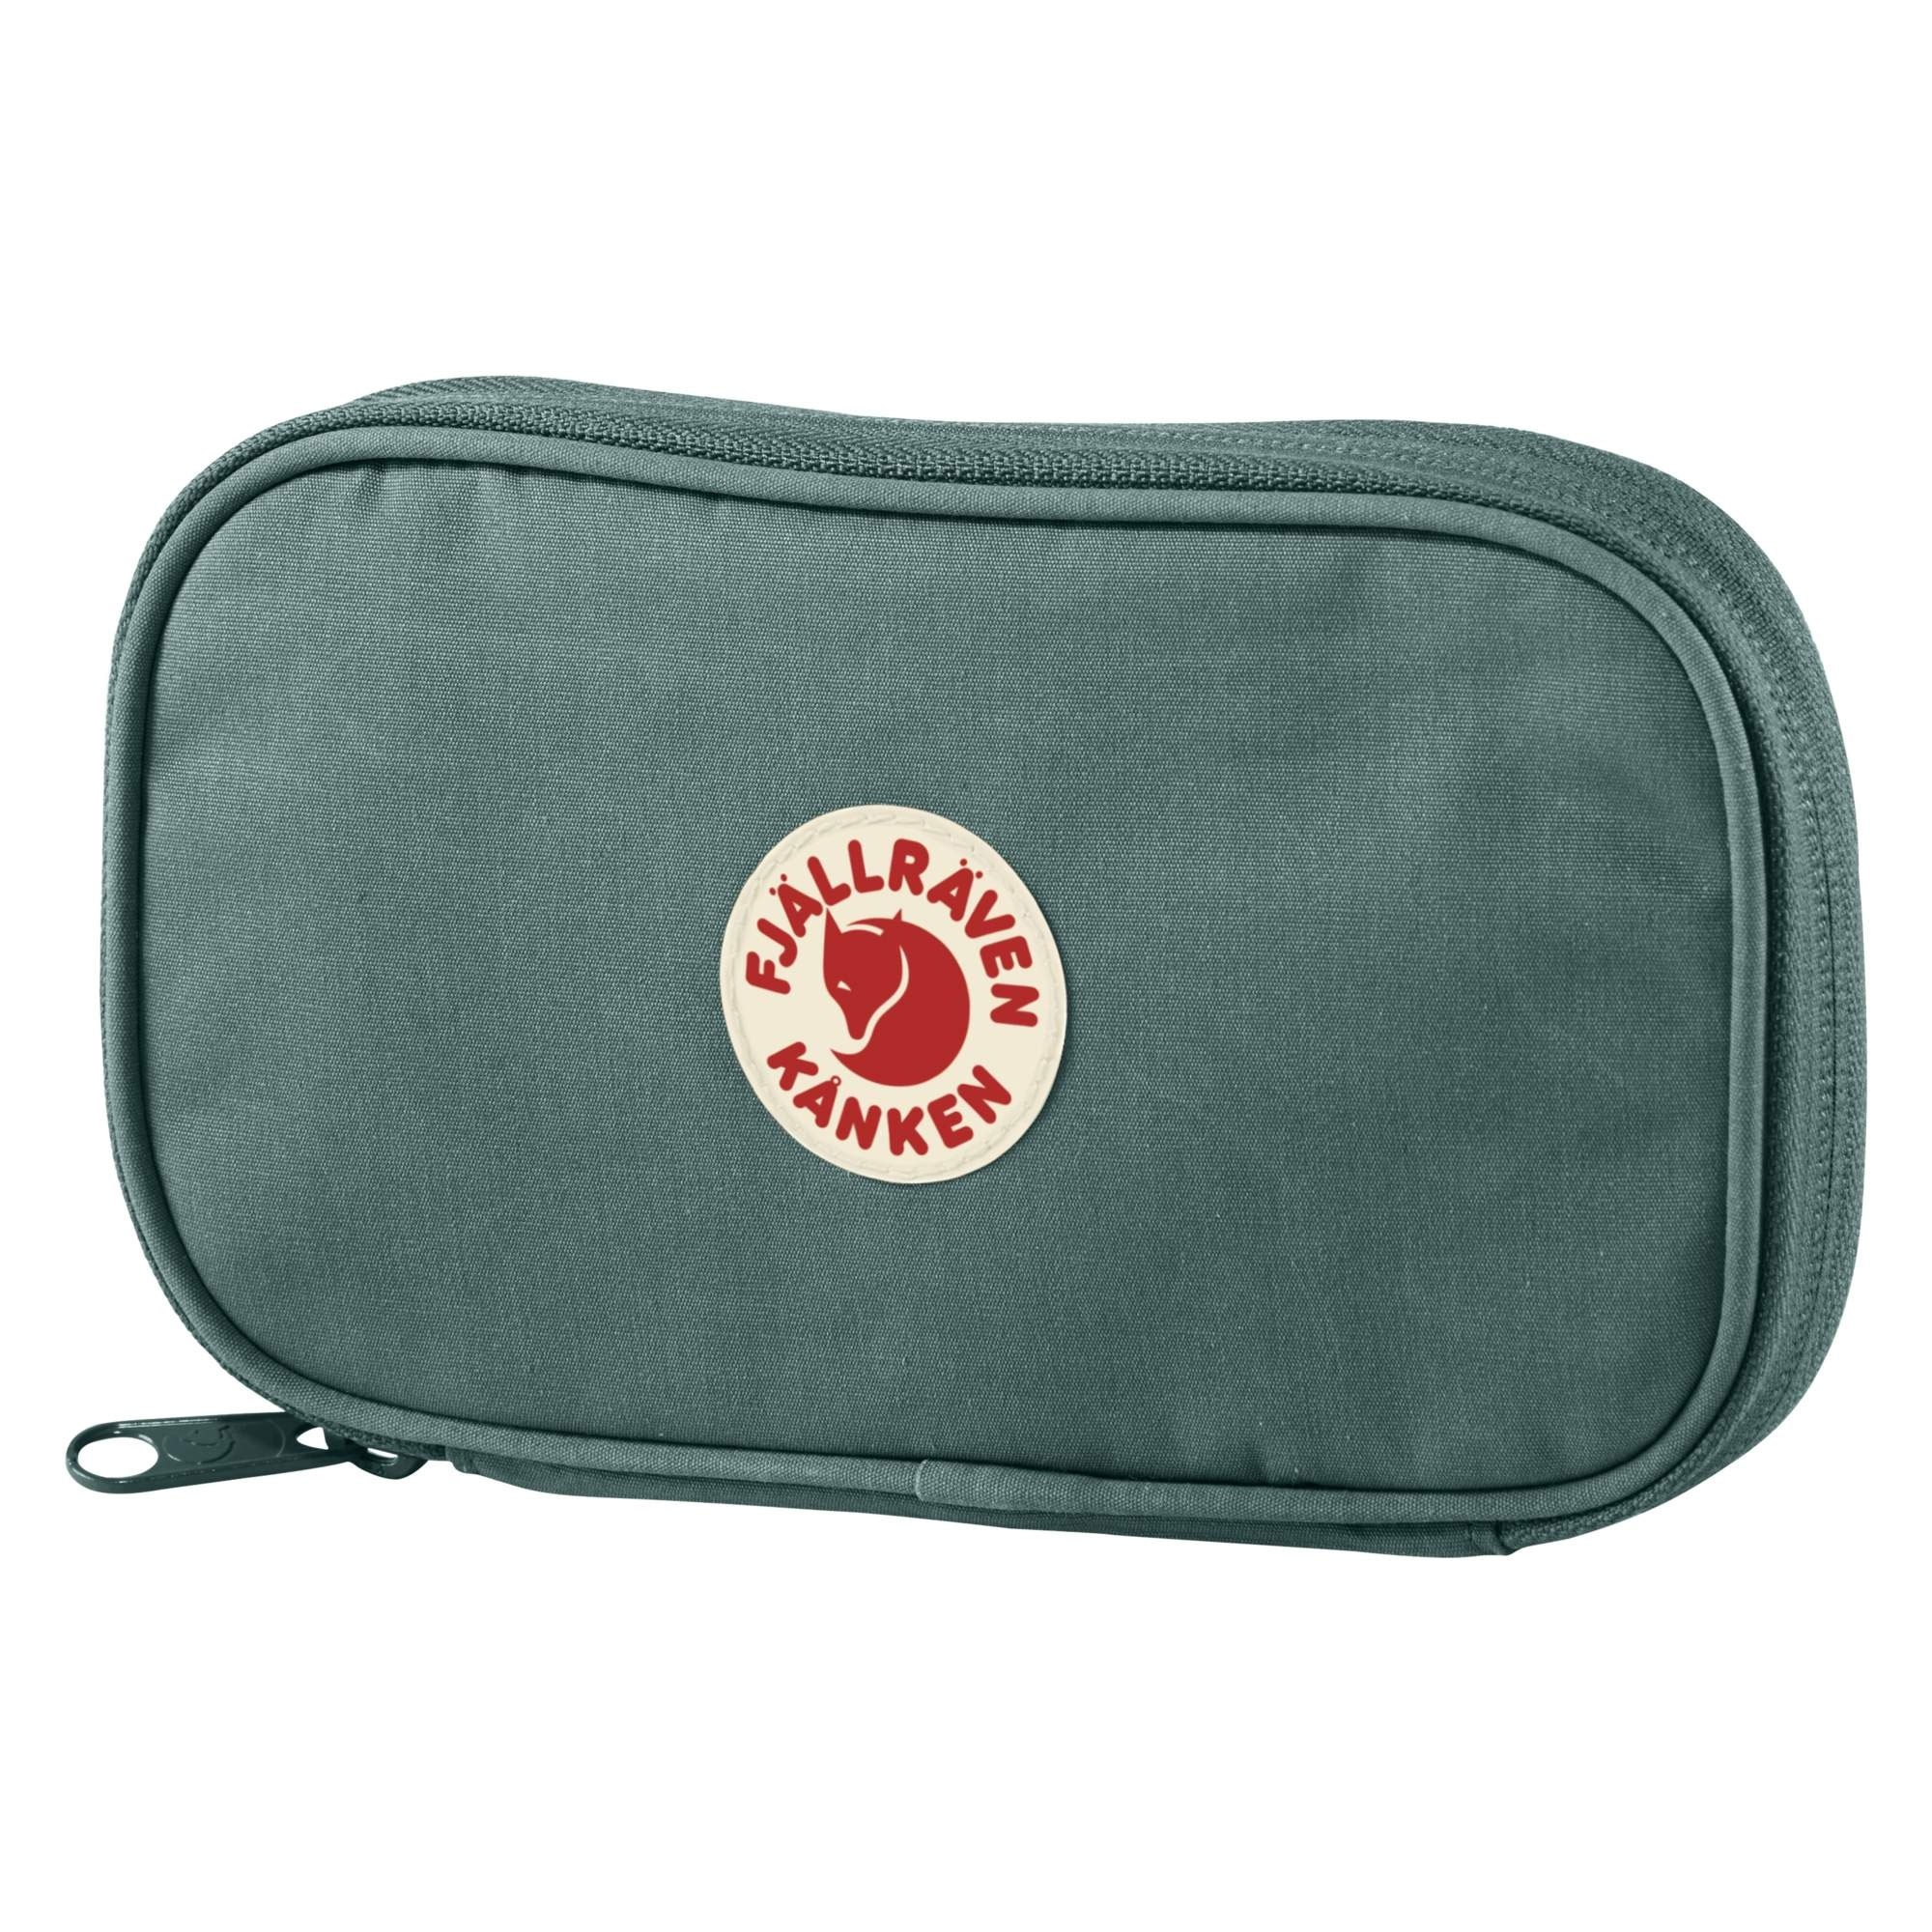 Fjallraven Kanken Travel Wallet - Frost Green